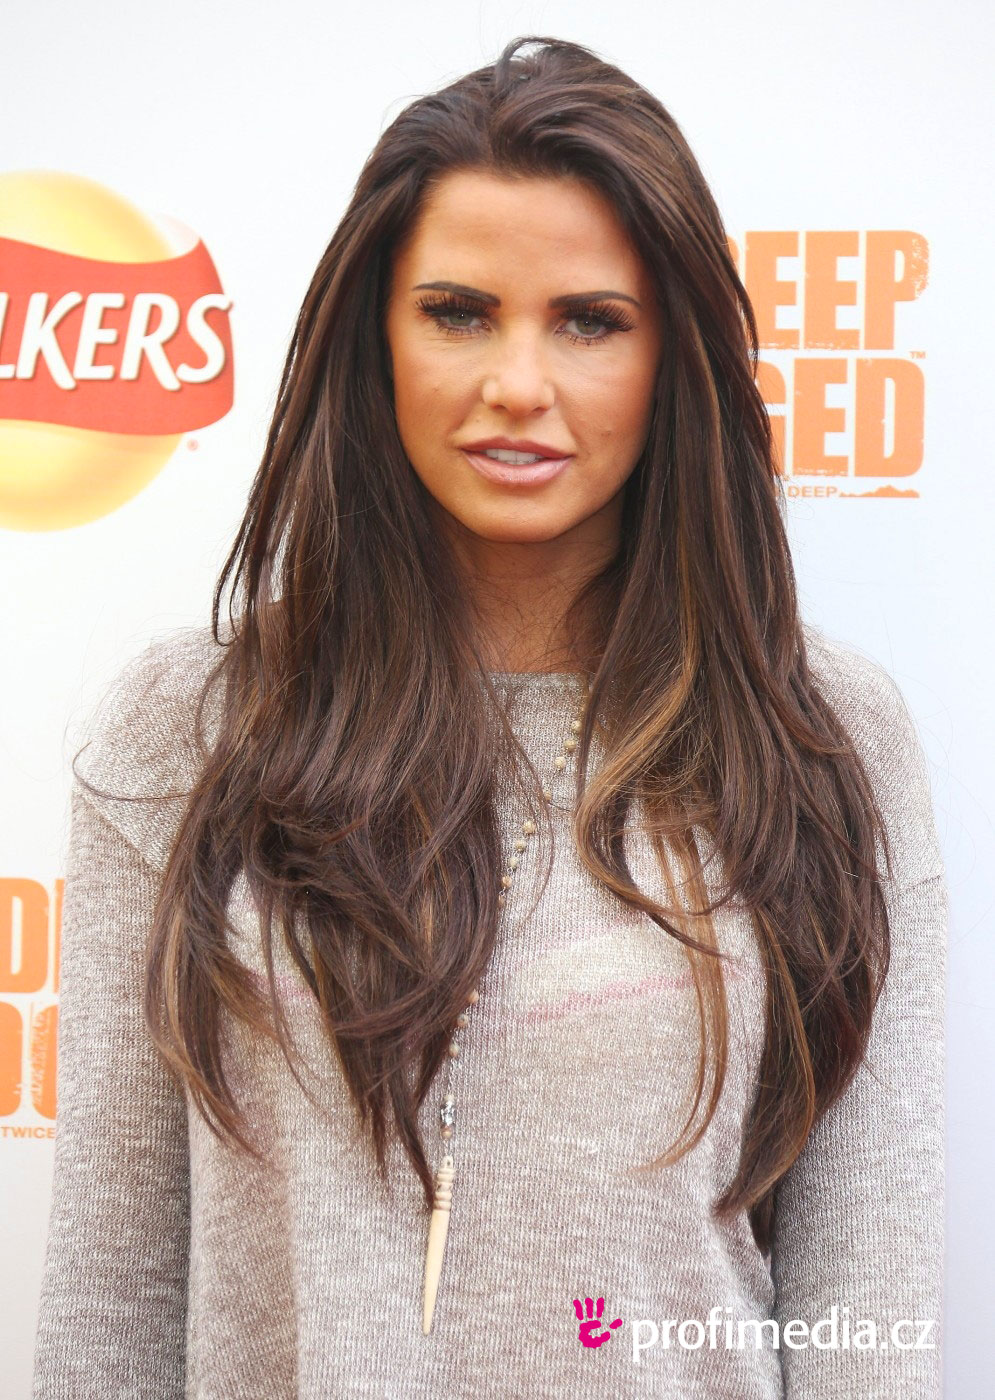 Katie Price Hairstyle Easyhairstyler